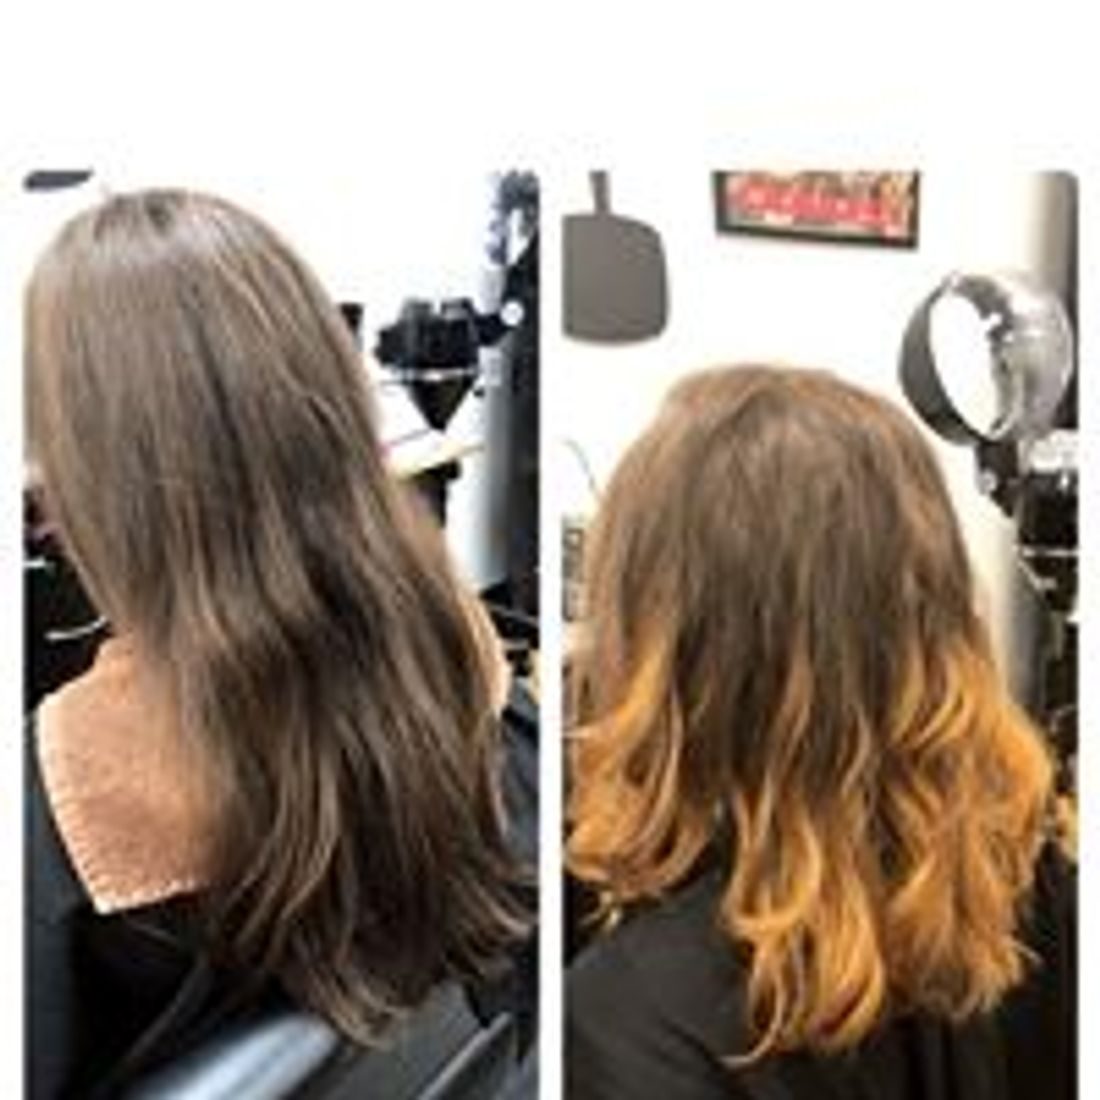 Balayage, Harircut, Hair Color